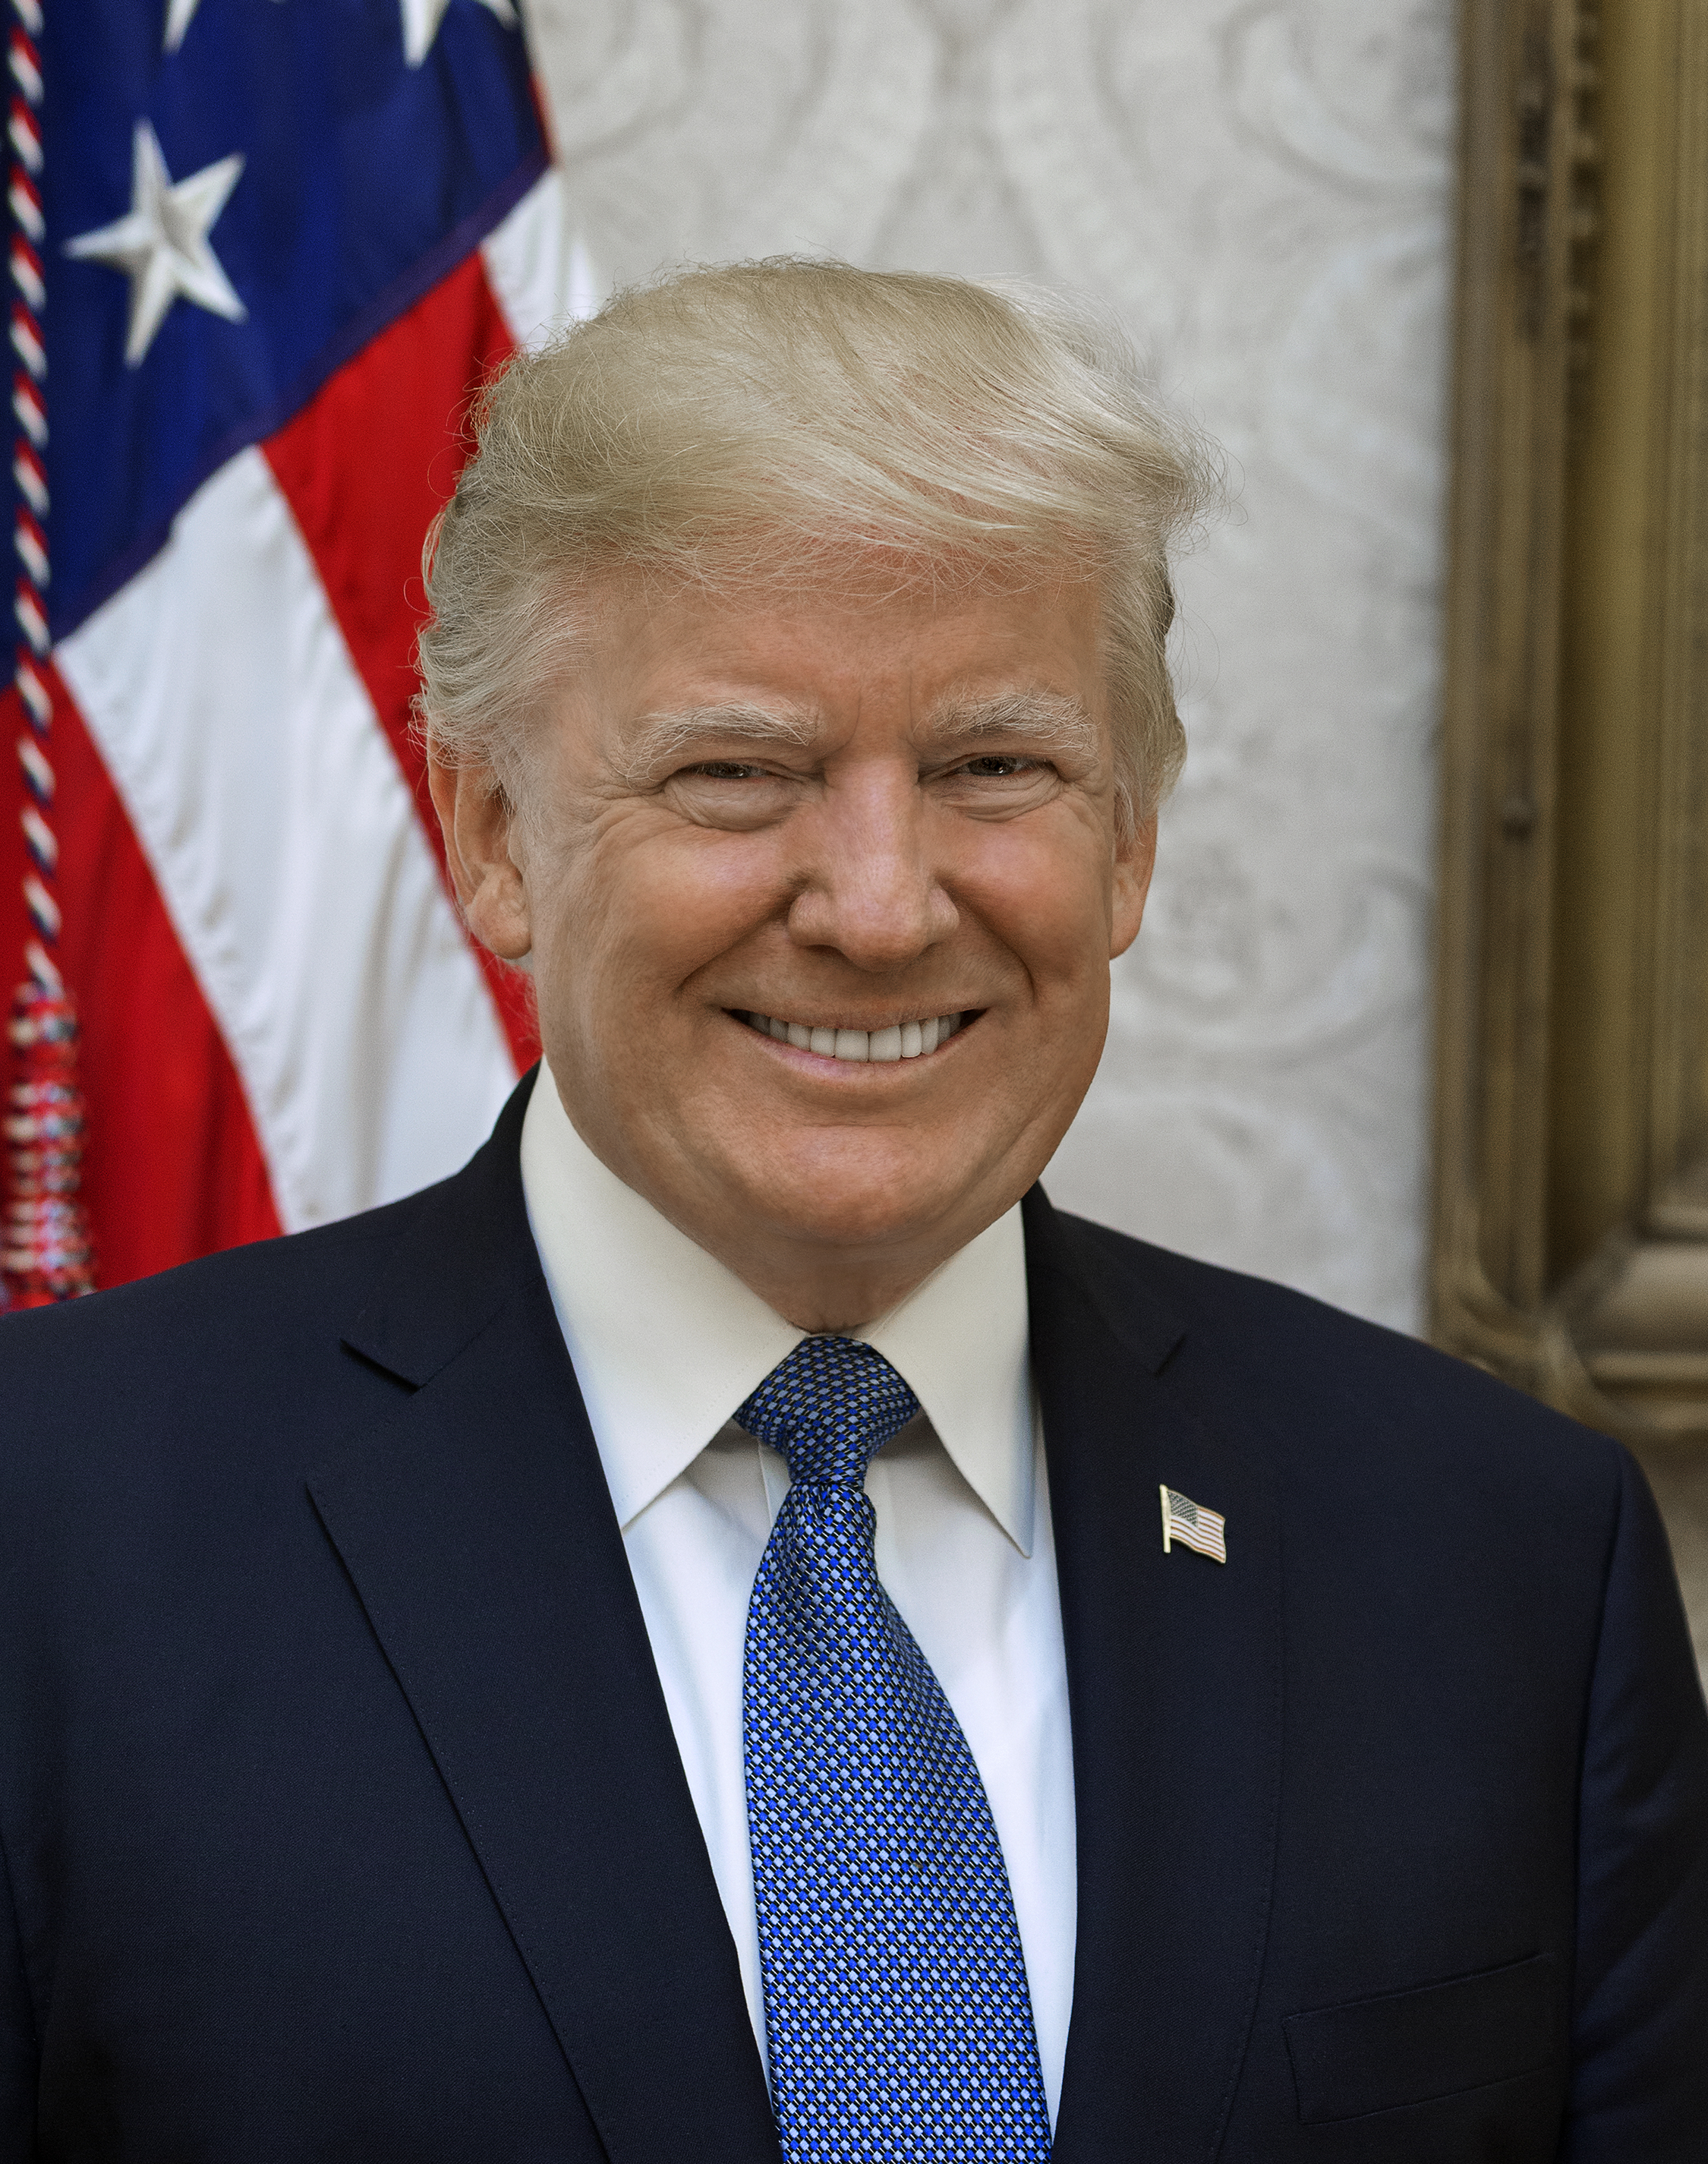 Historic president trump full victory event at white